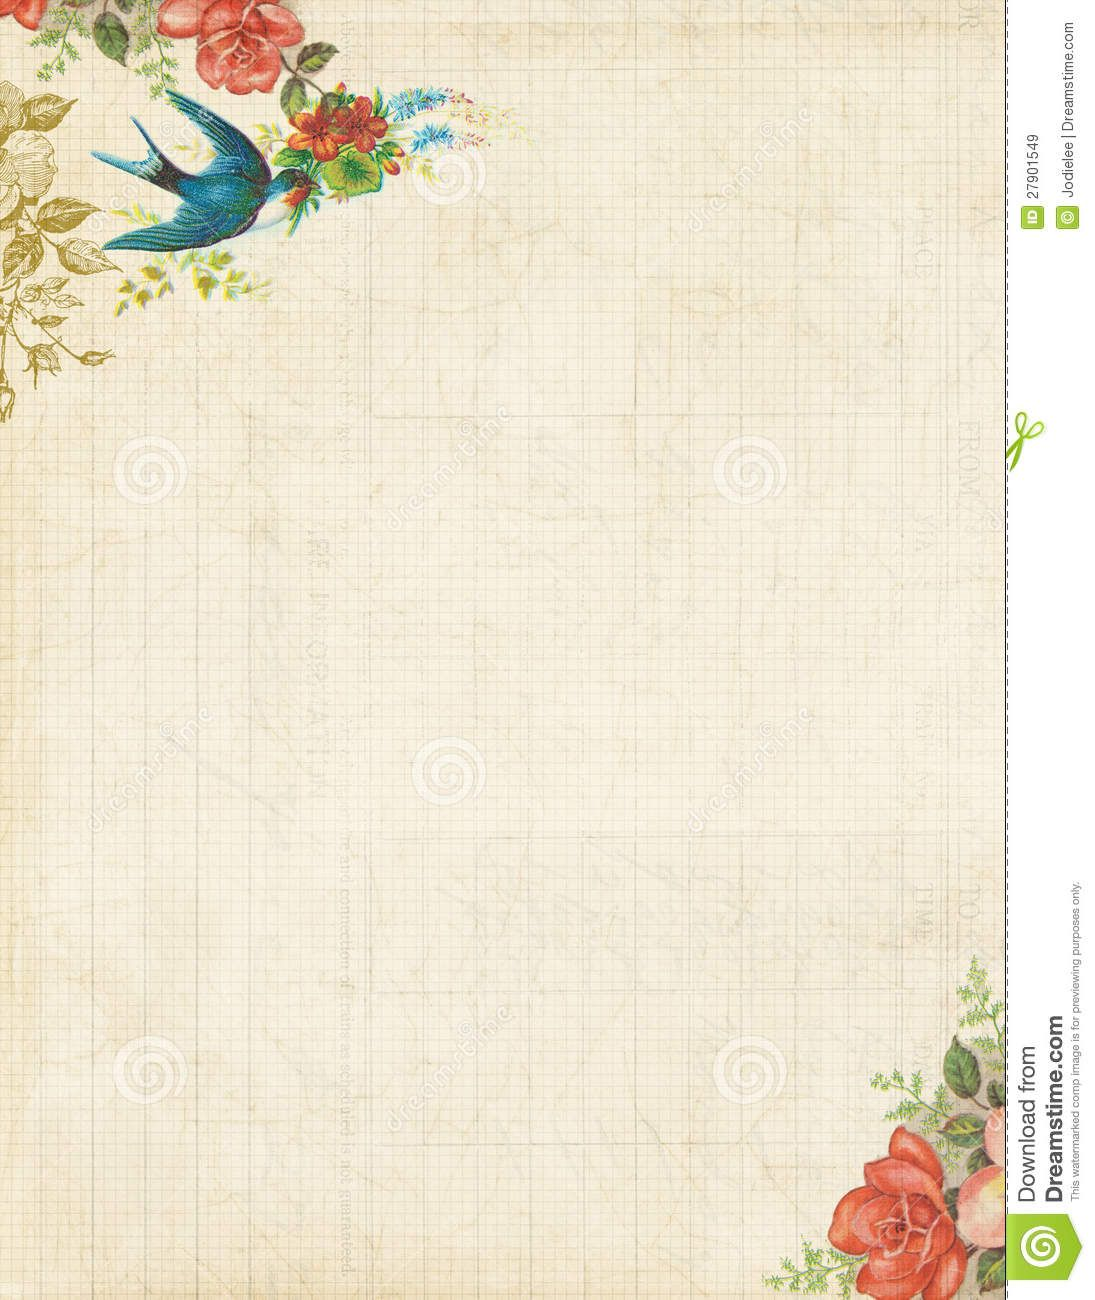 Printable vintage bird and roses stationary or background